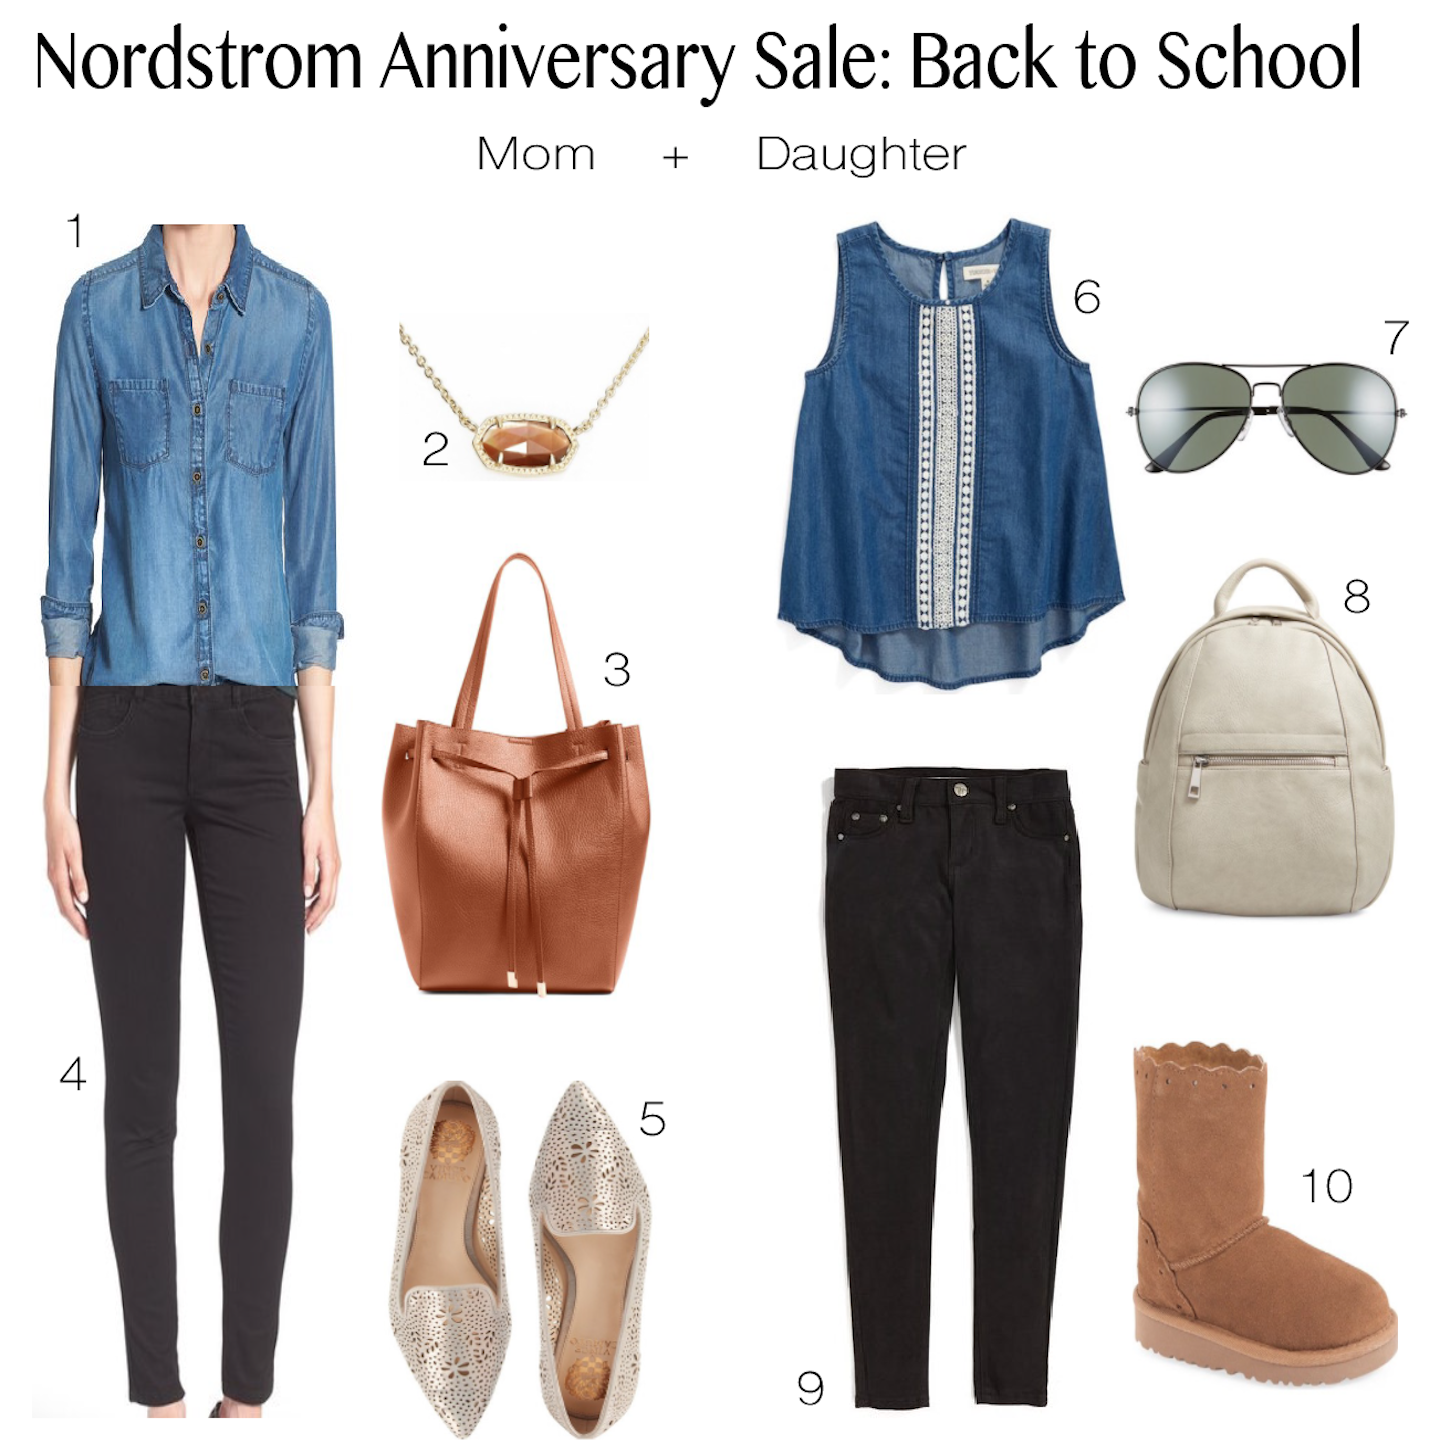 Nordstrom Long Island Sale